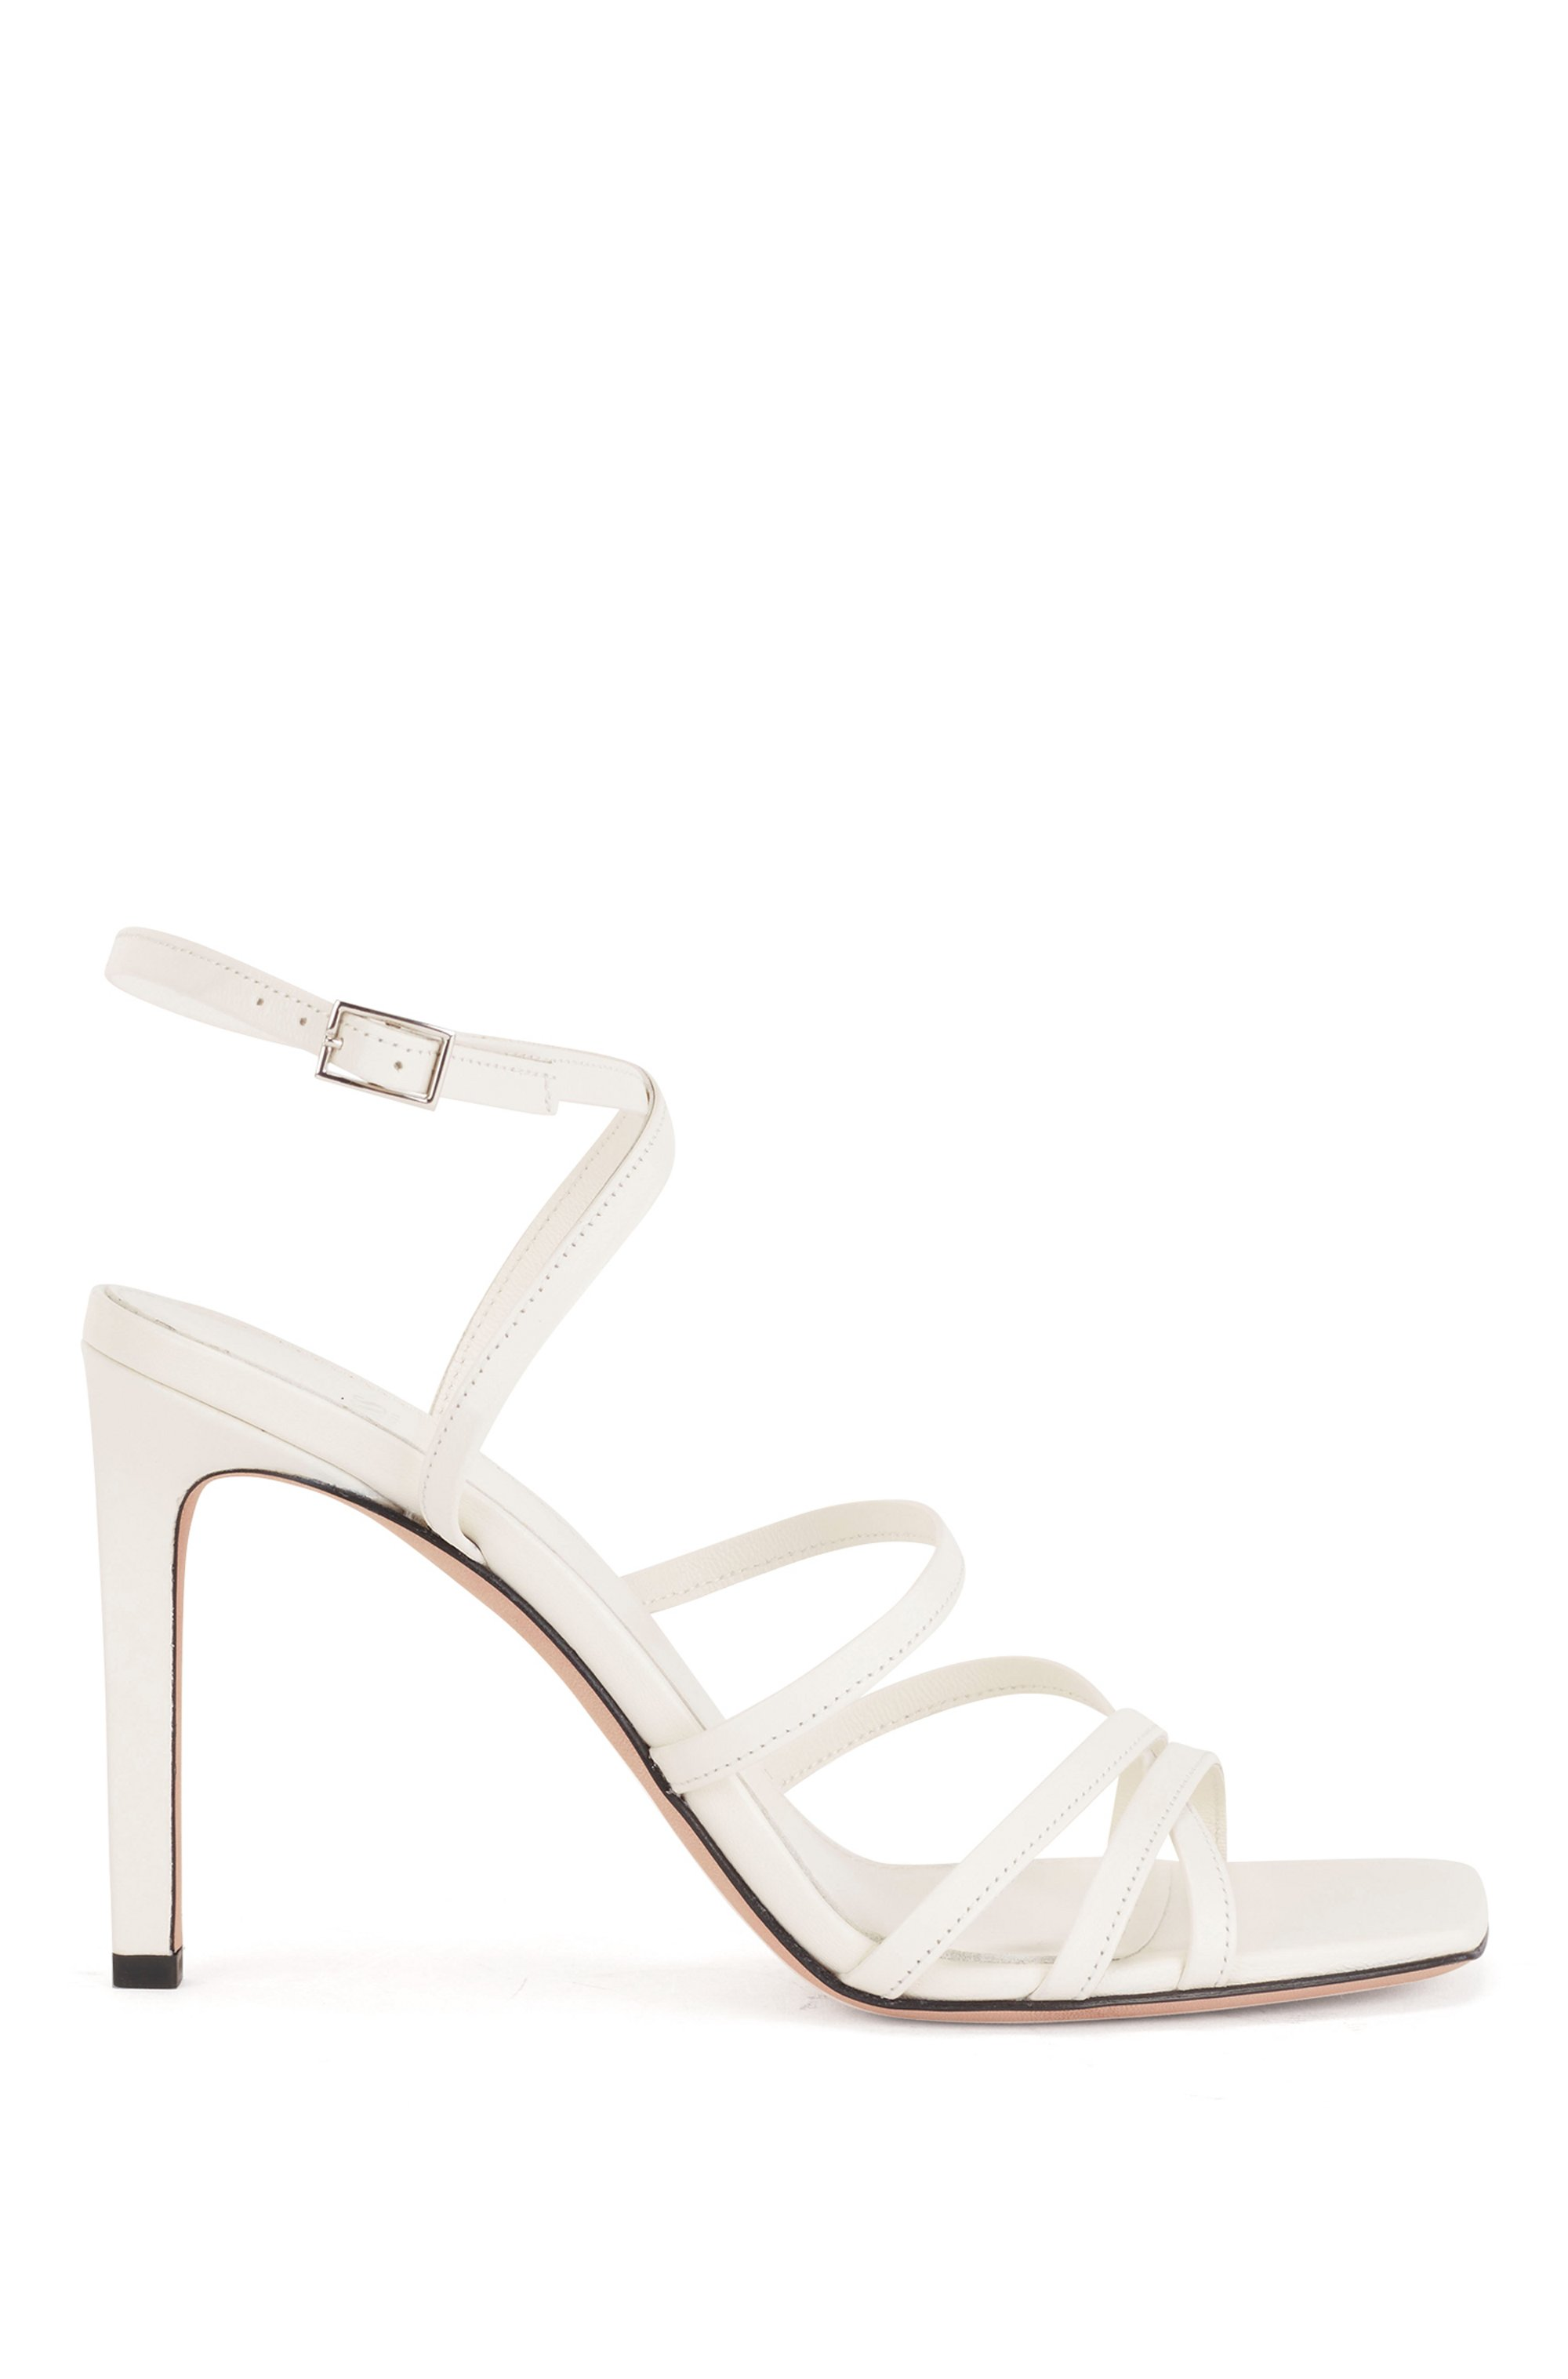 Heeled strappy sandals in Italian leather with squared toe, White